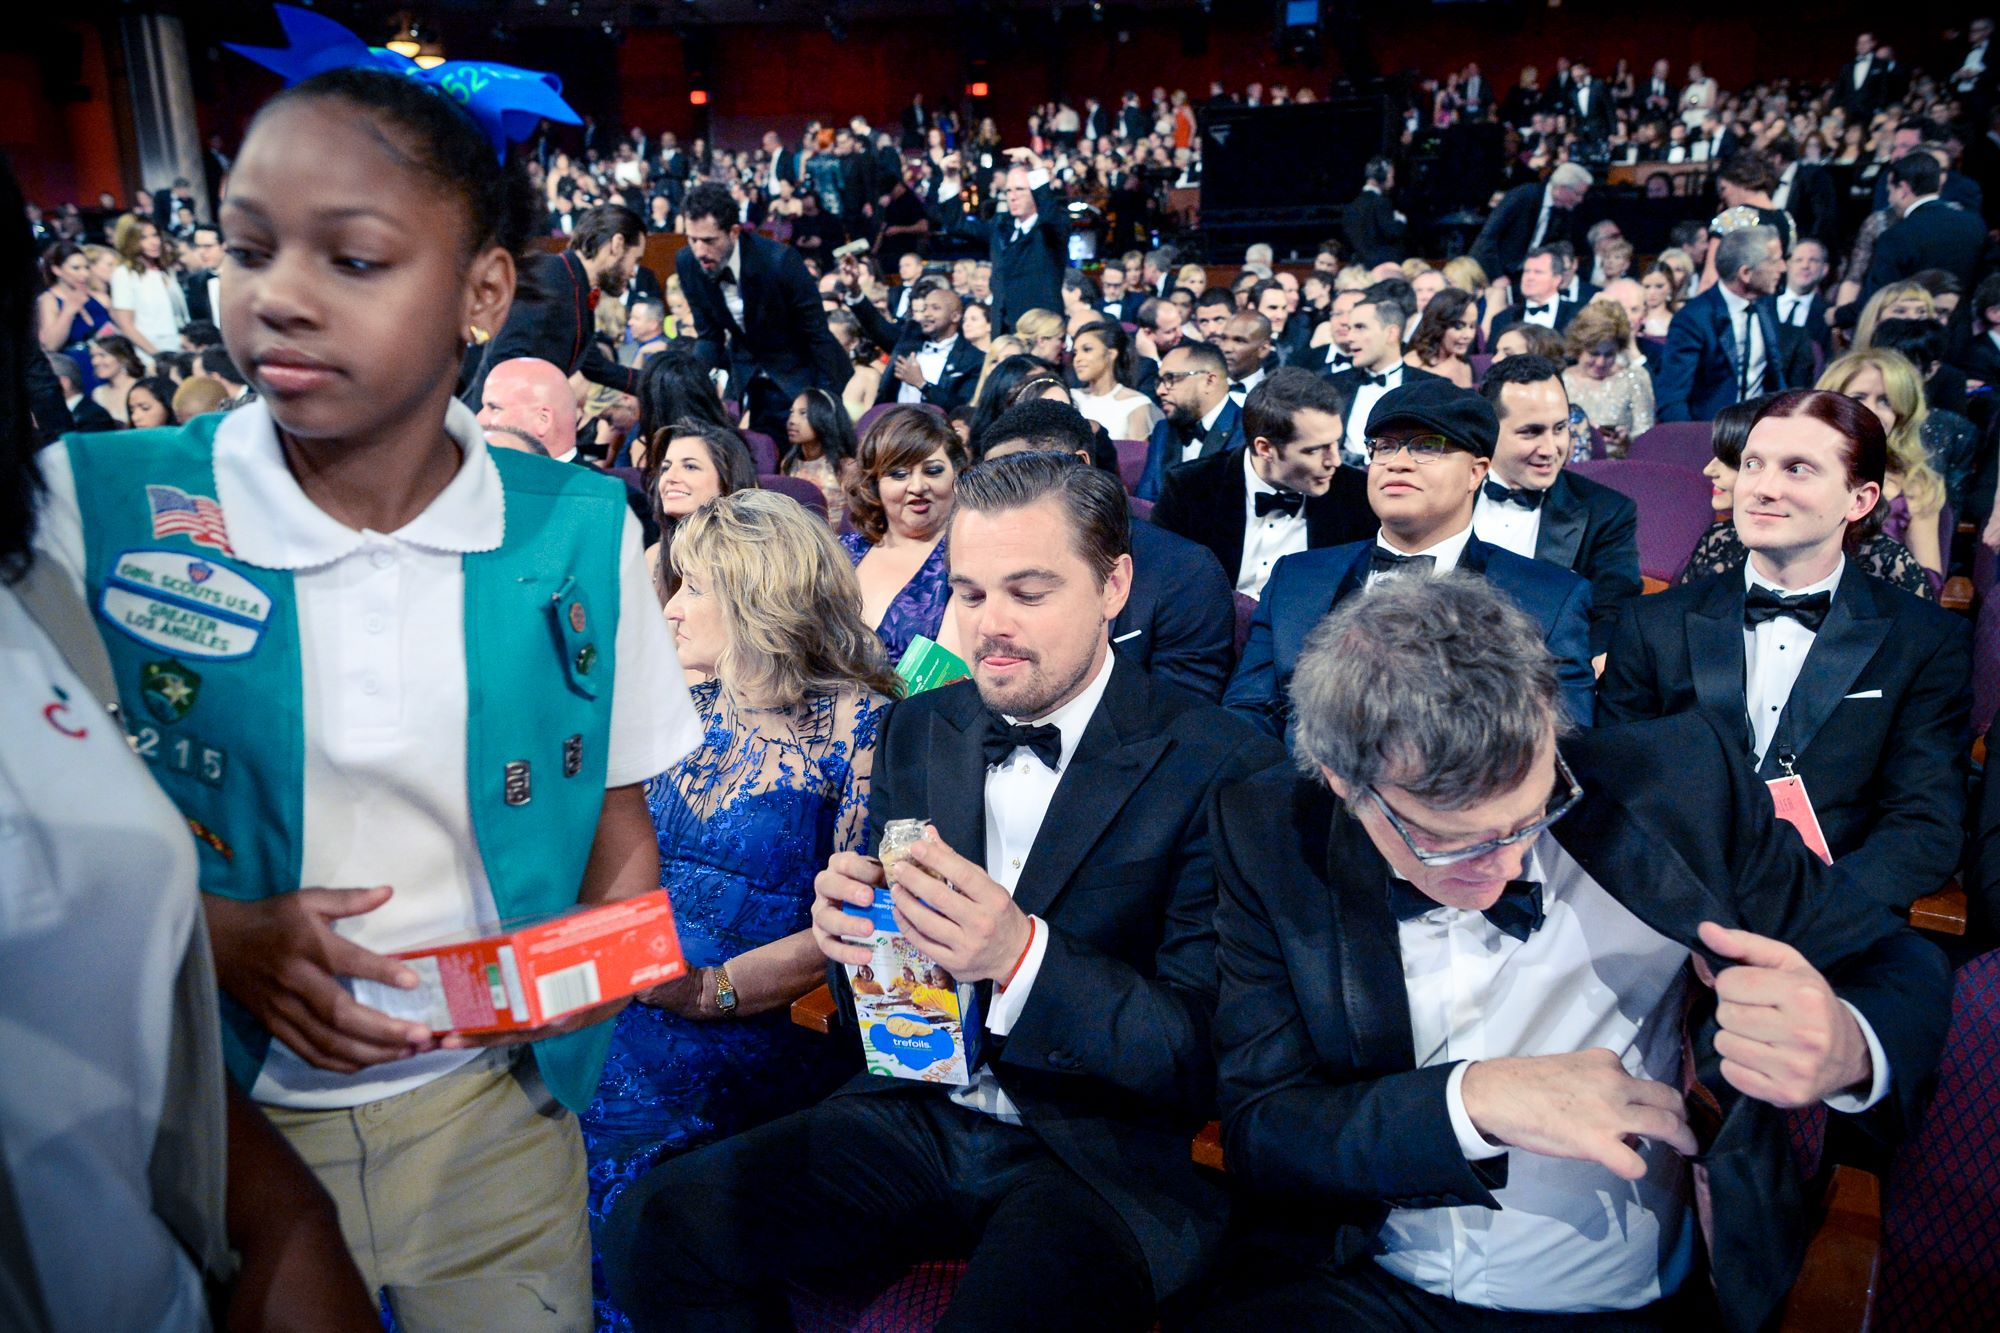 before Leo gots the Oscar, he got the cookie